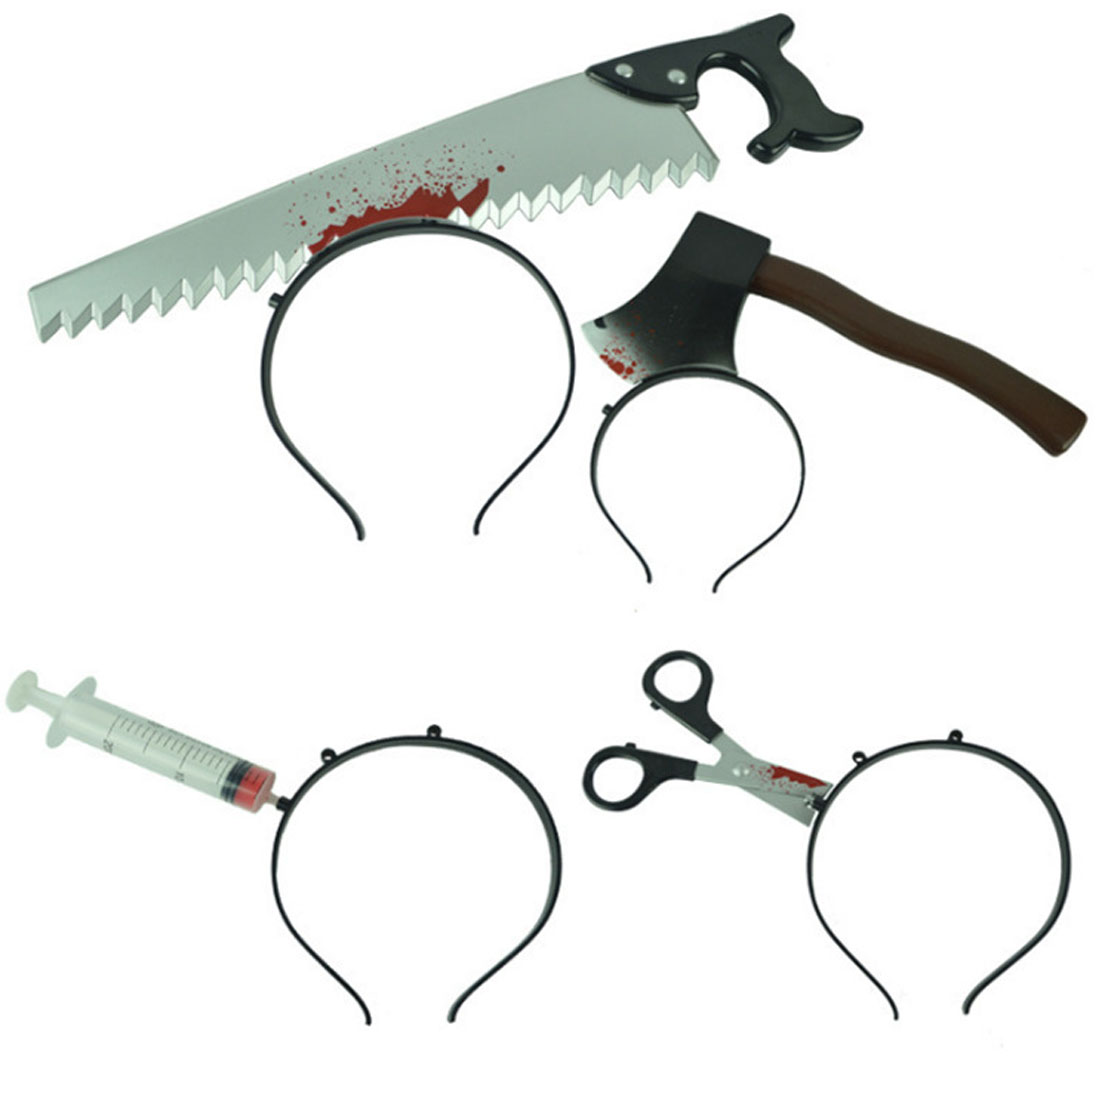 Novelty & Special Use Multi Shapes Funny Scary Toys Halloween Perform Props Axe Saw Nail Knife Headwear Fake Blood Scene Props Hair Accessories Costumes & Accessories